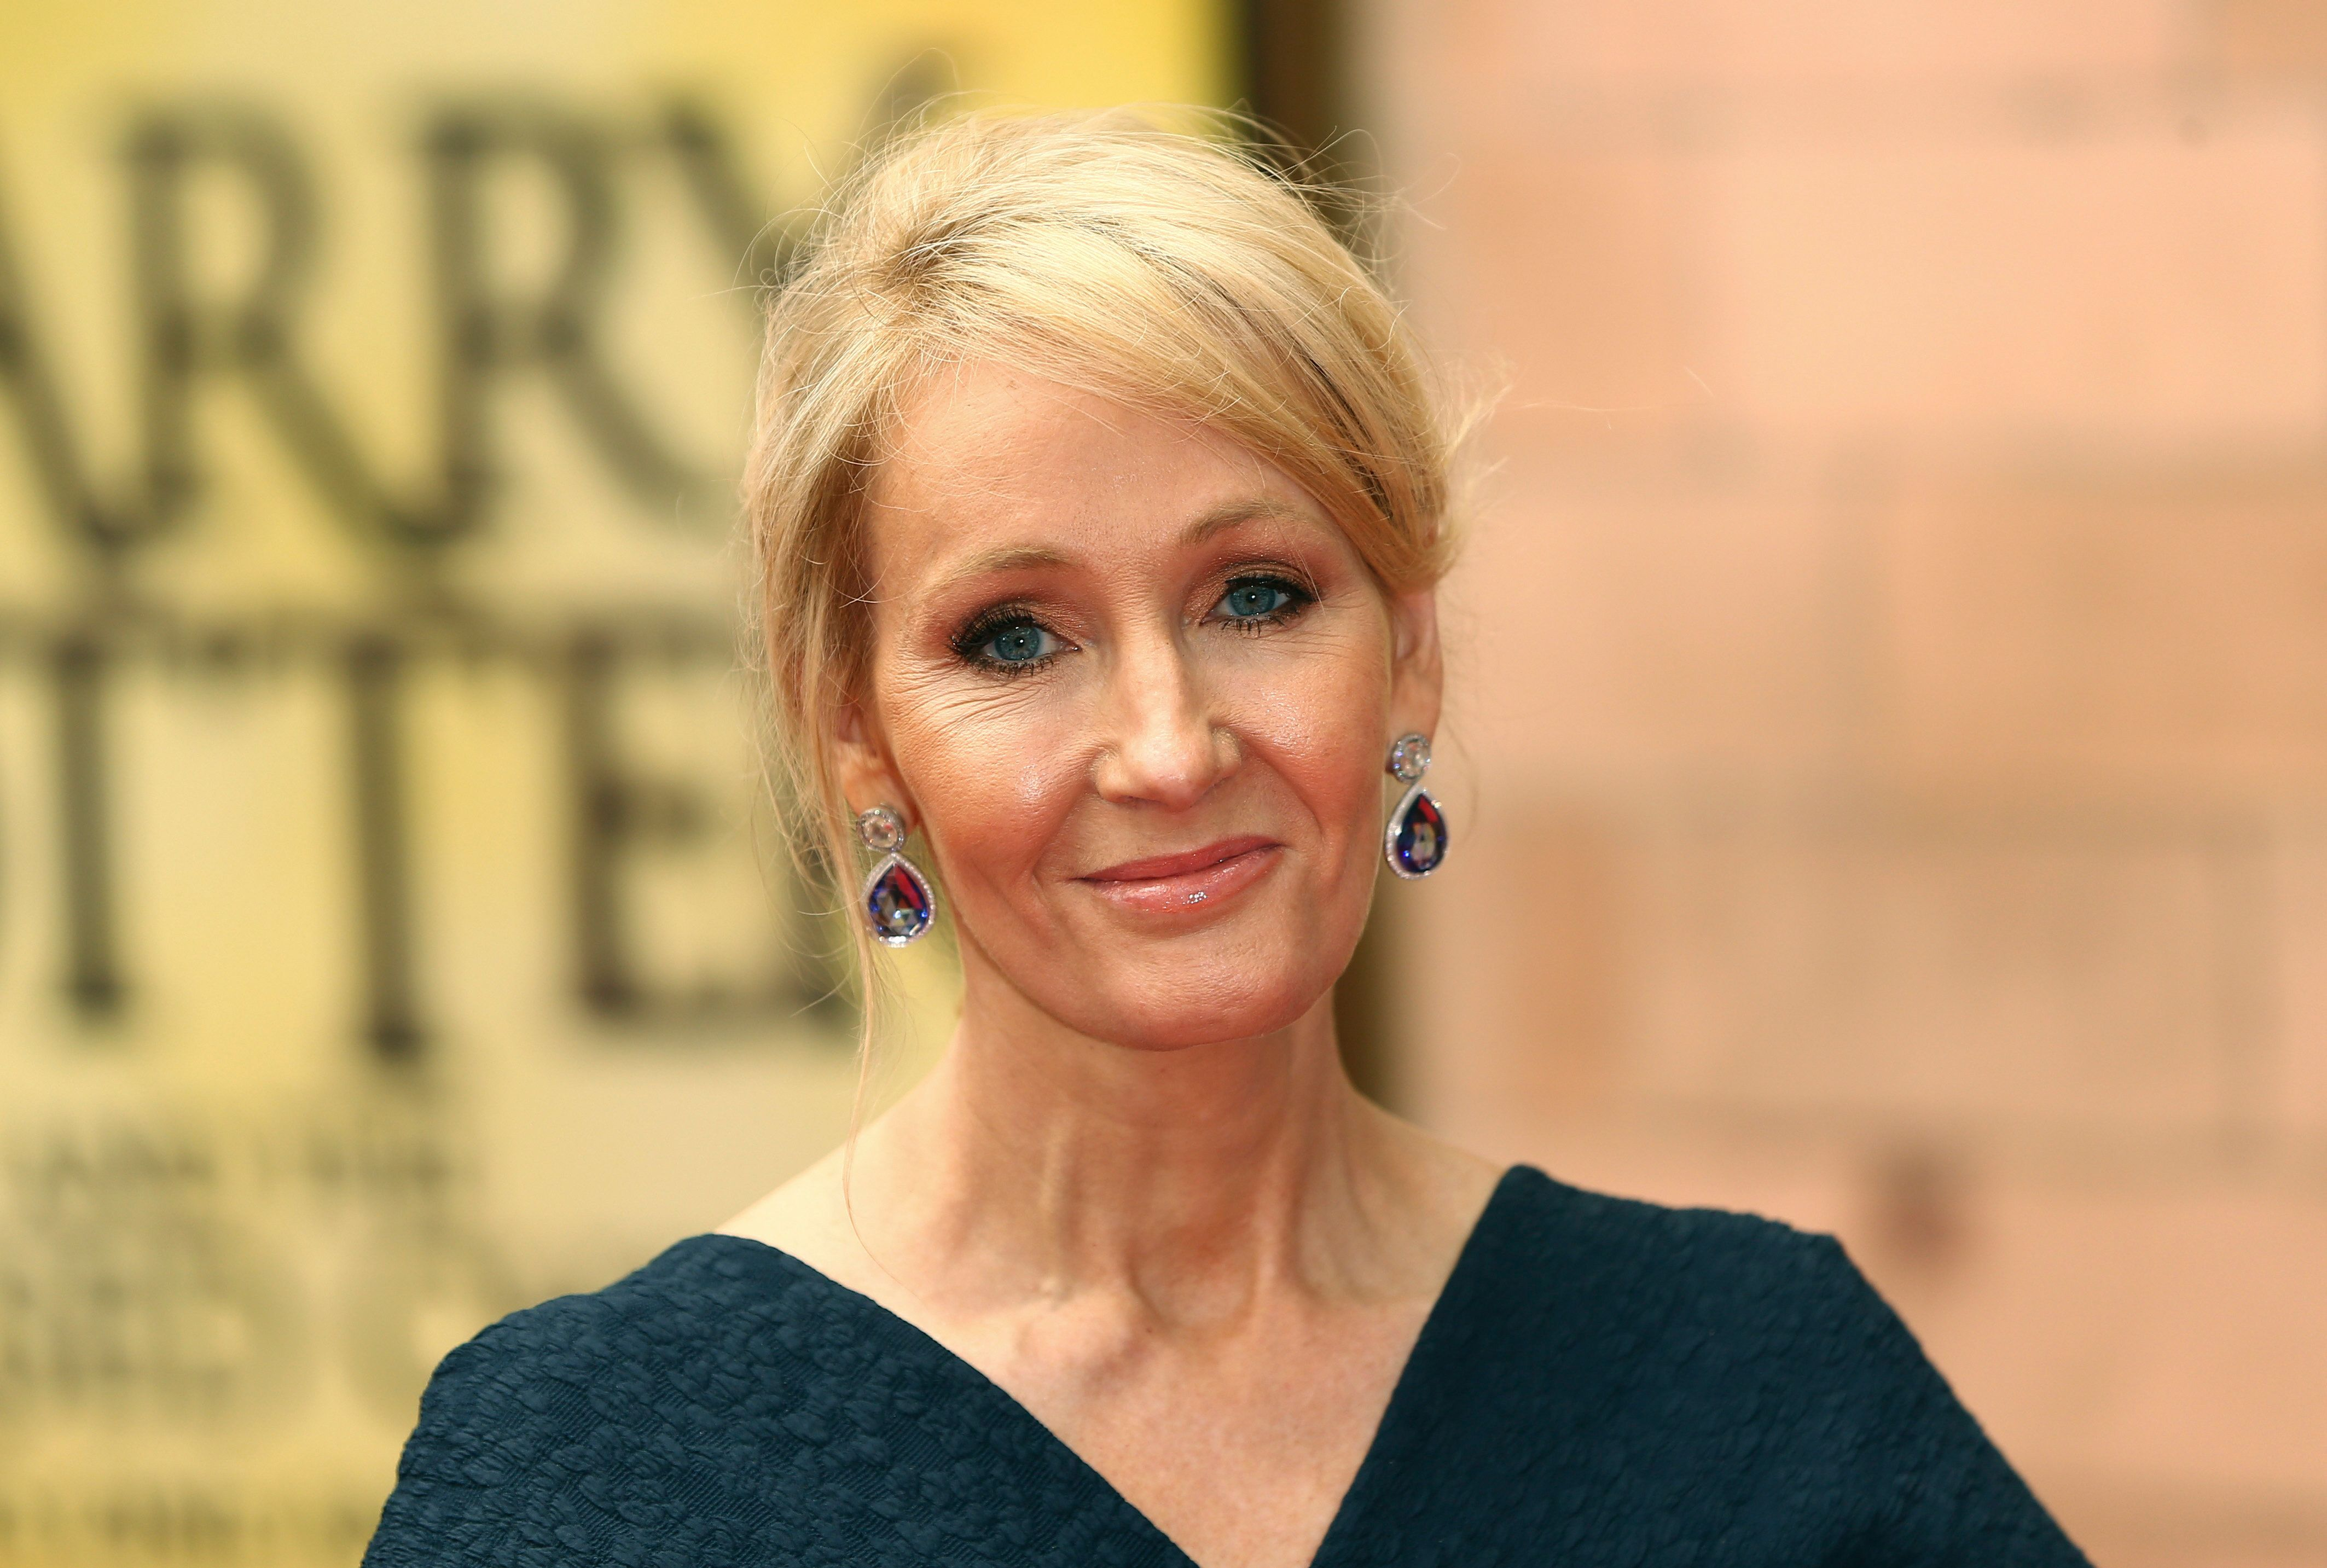 J.K. Rowling, the queen of books, has the perfect holiday message to inspire us